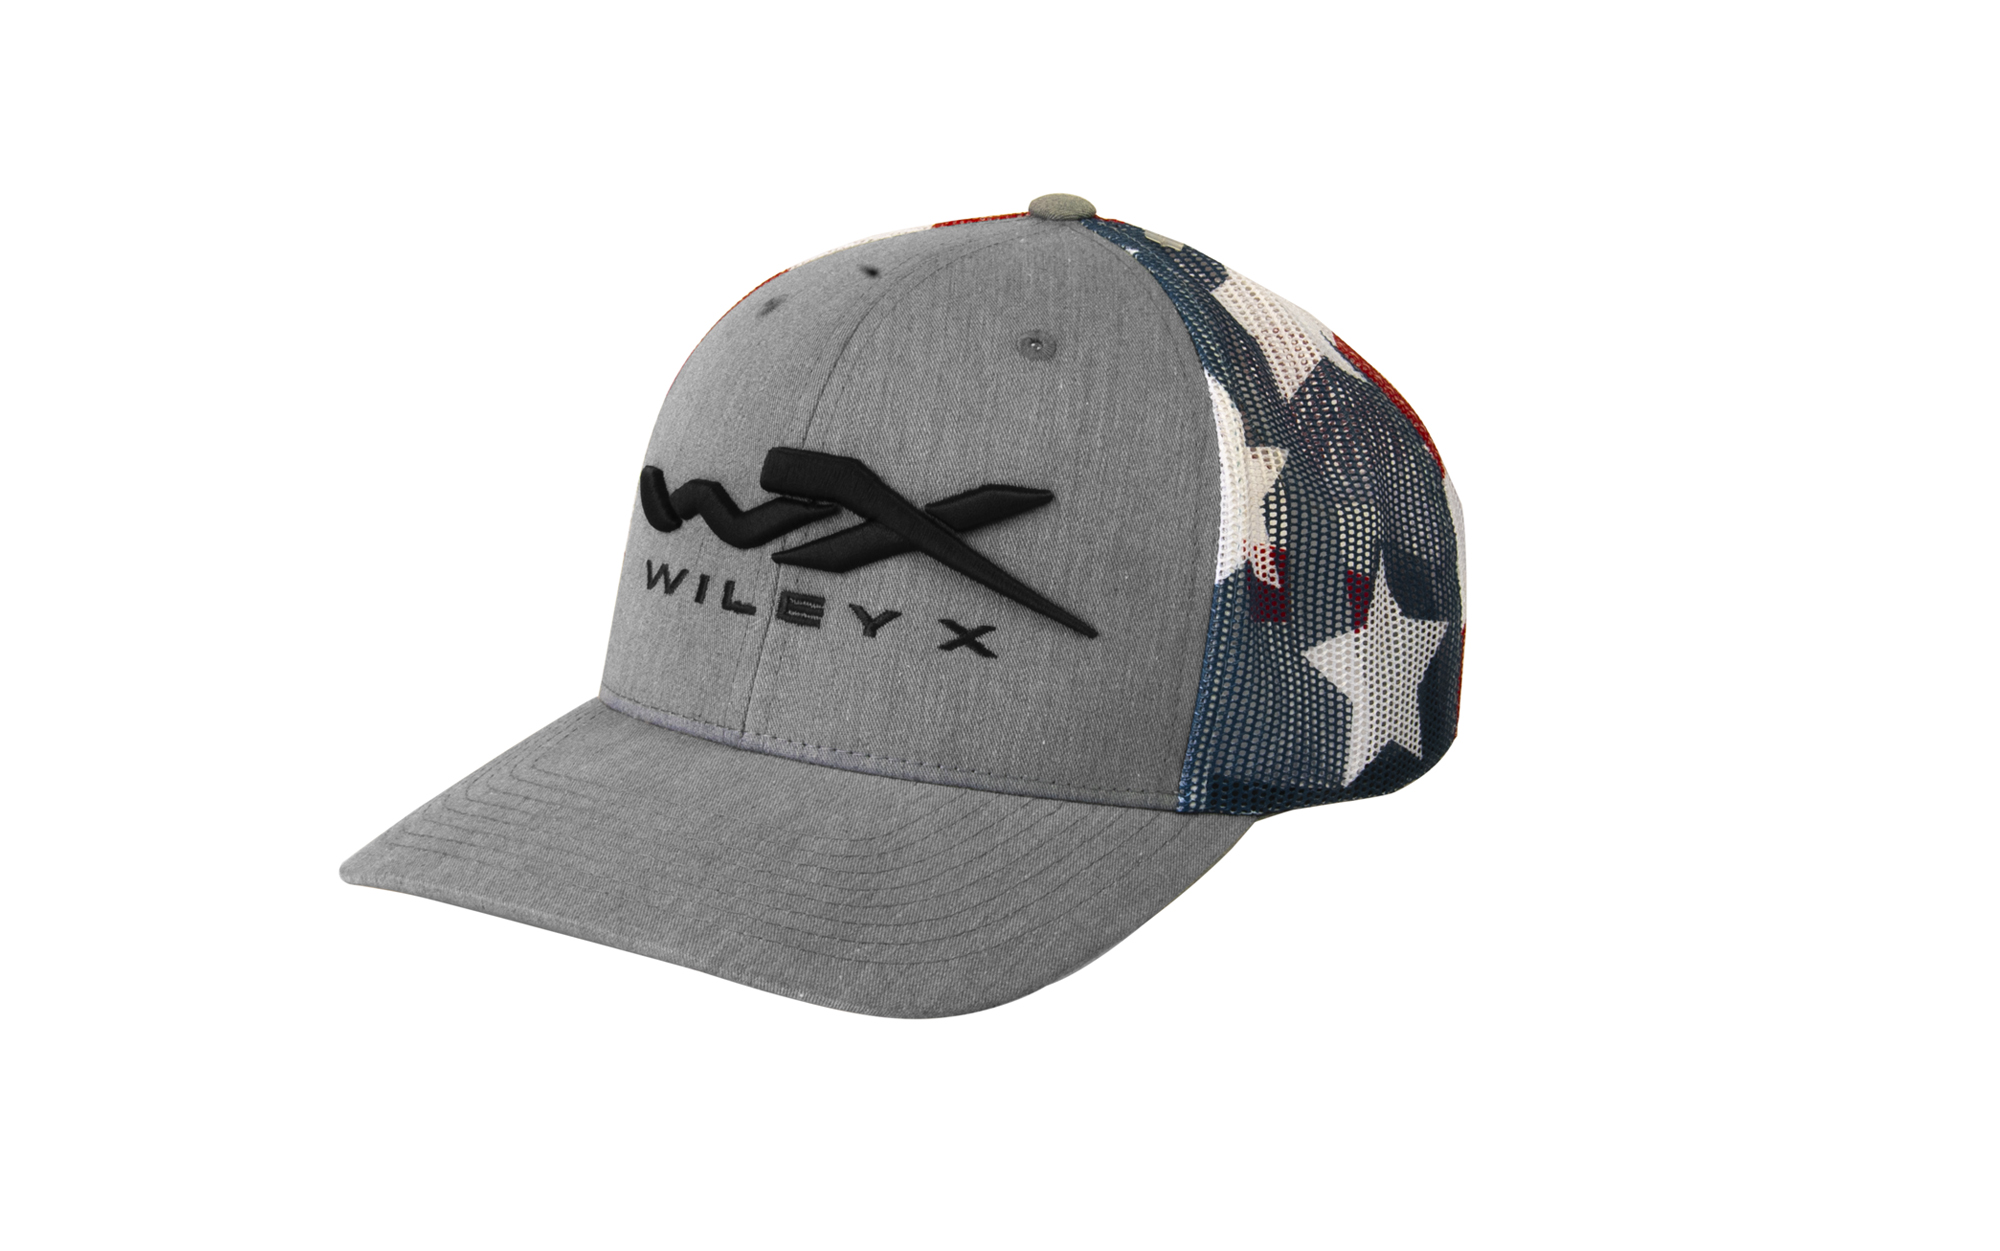 WX Stars and Stripes Mesh Cap Image